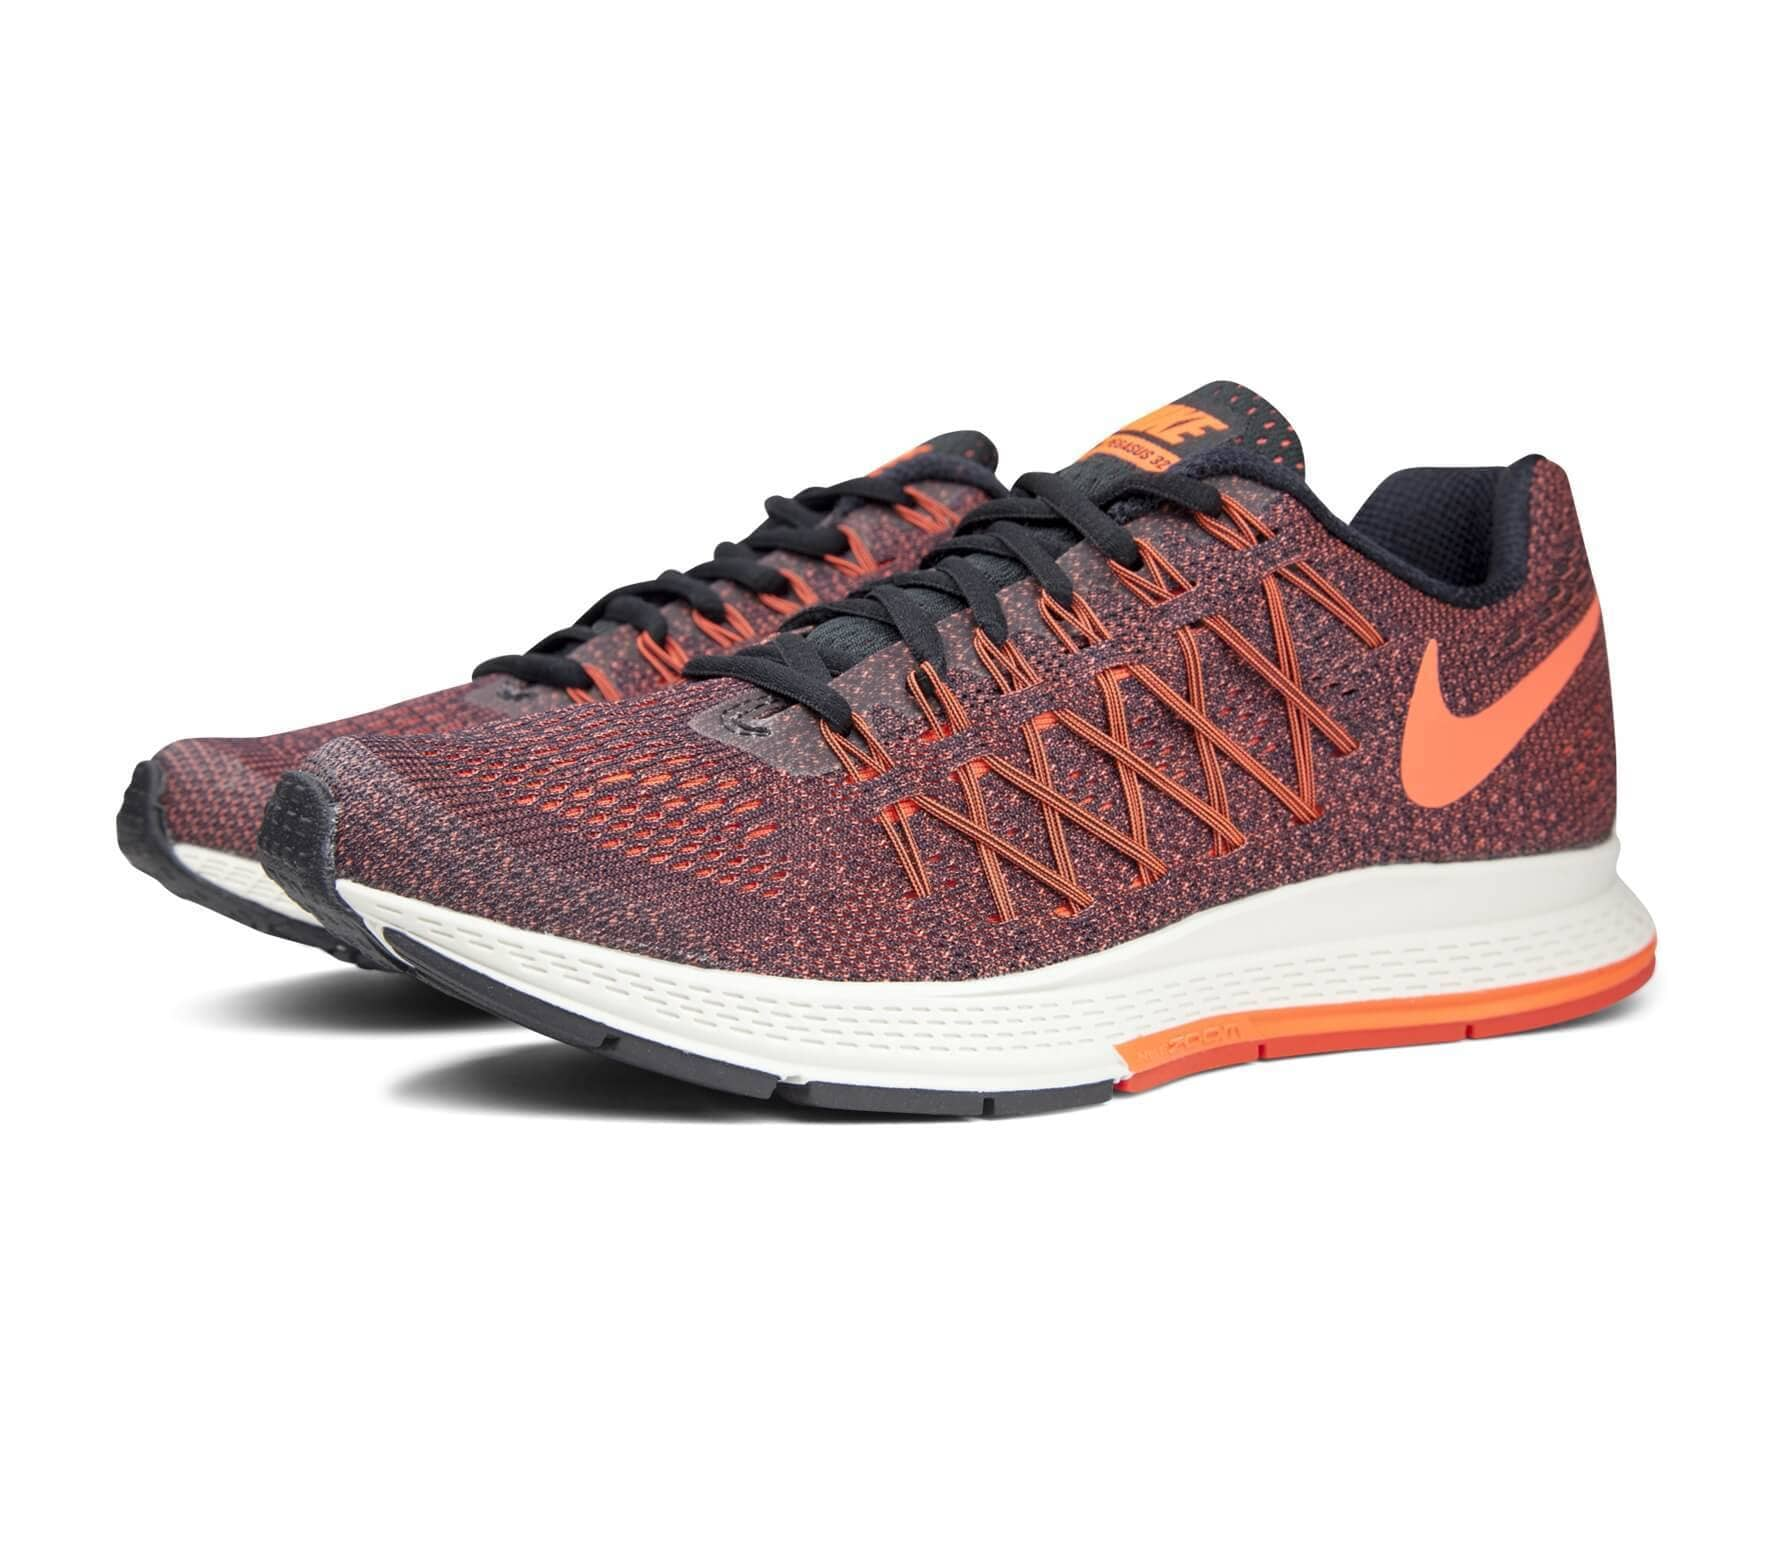 27e5a88024f9b Nike - Air Zoom Pegasus 32 women s running shoes (black orange ...